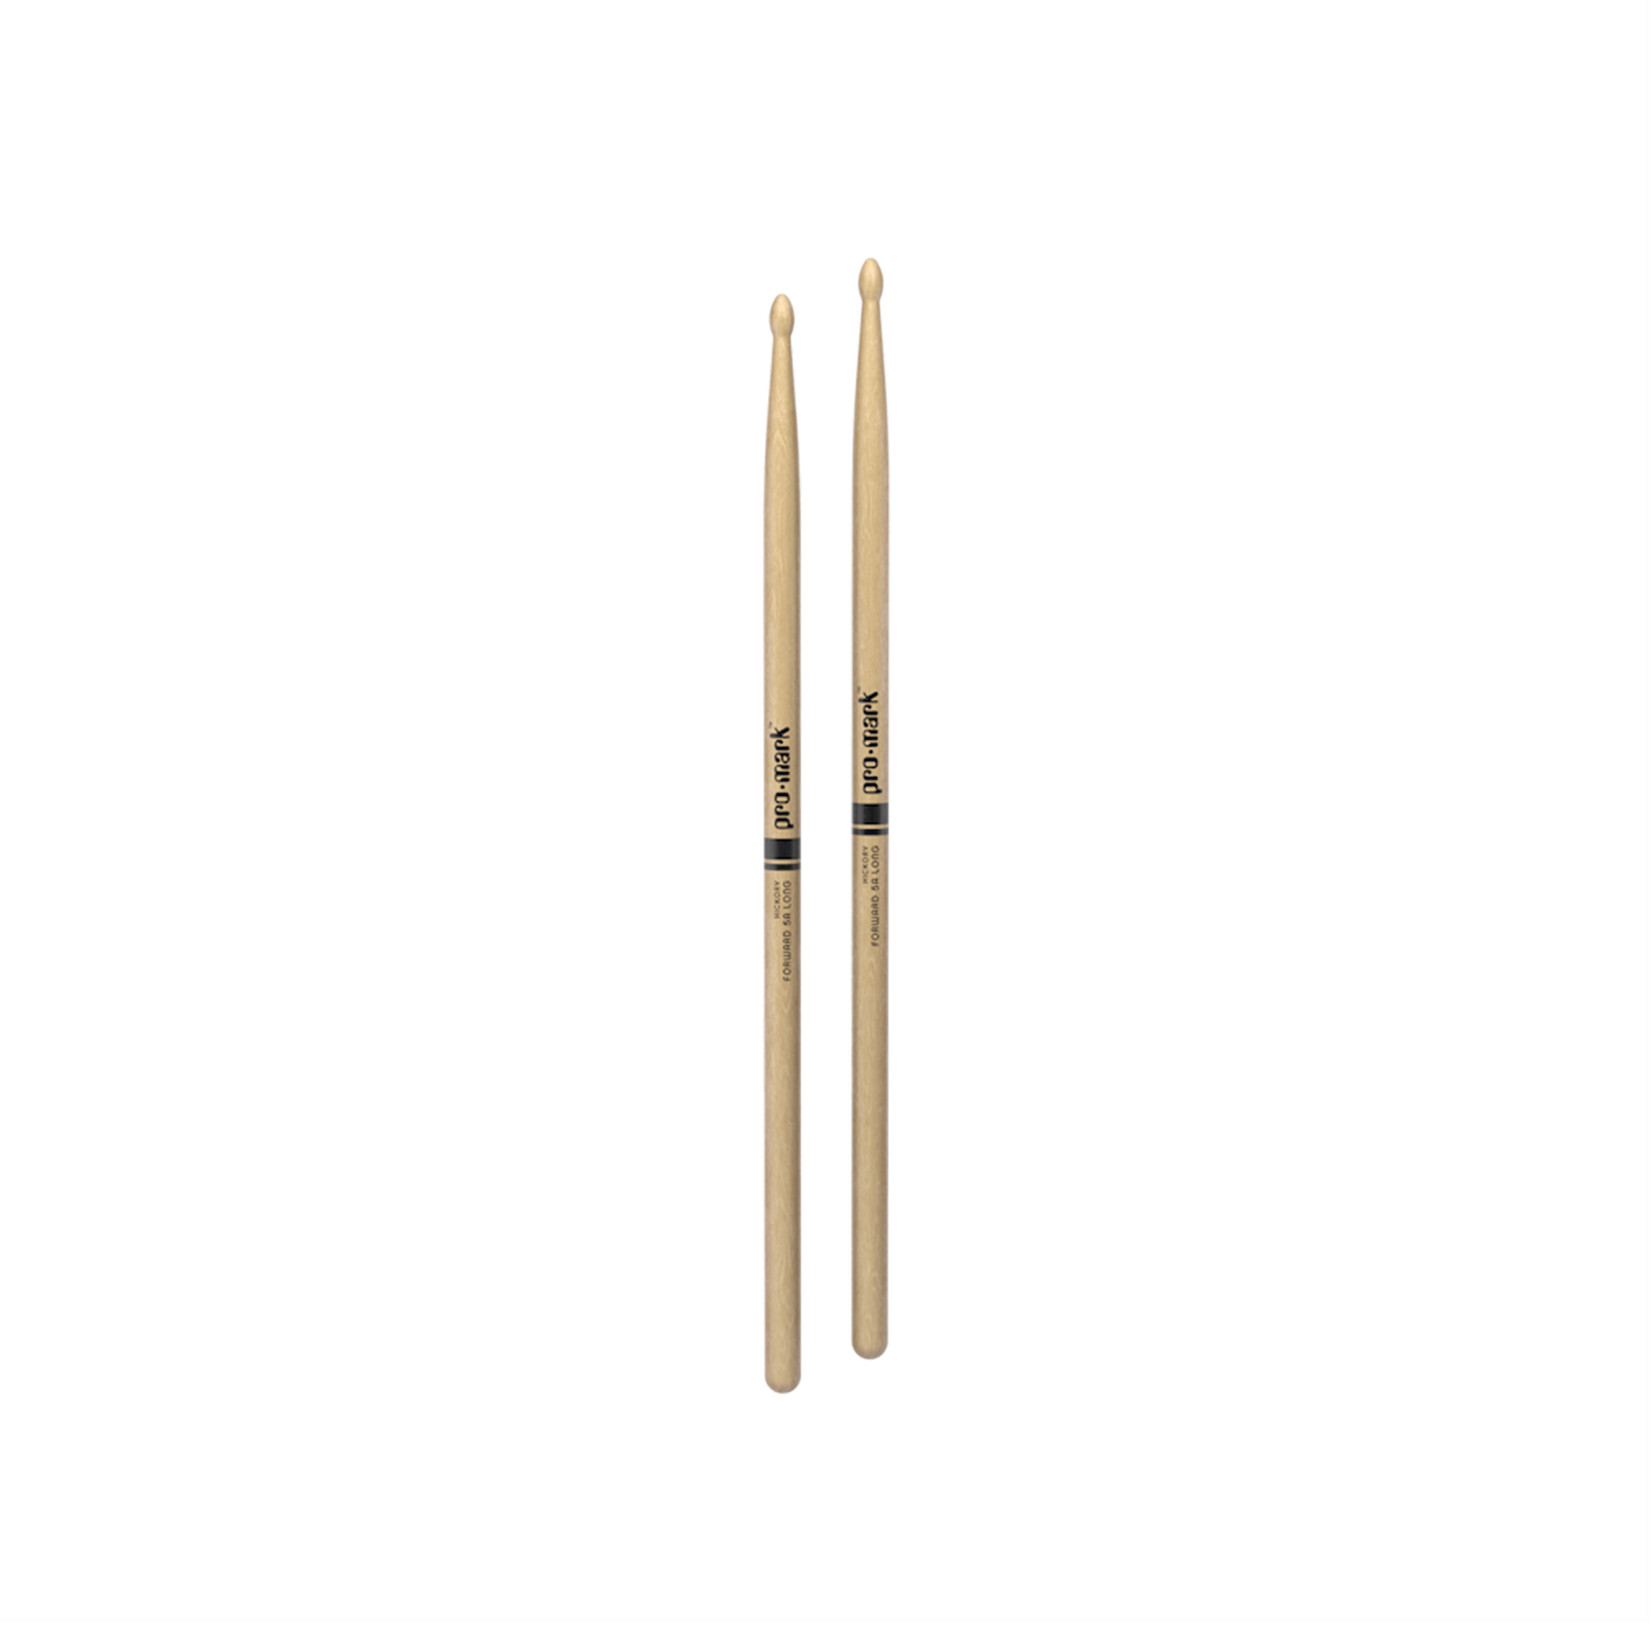 Promark ProMark Classic Forward 5A Long Hickory Oval Wood Tip Drumstick